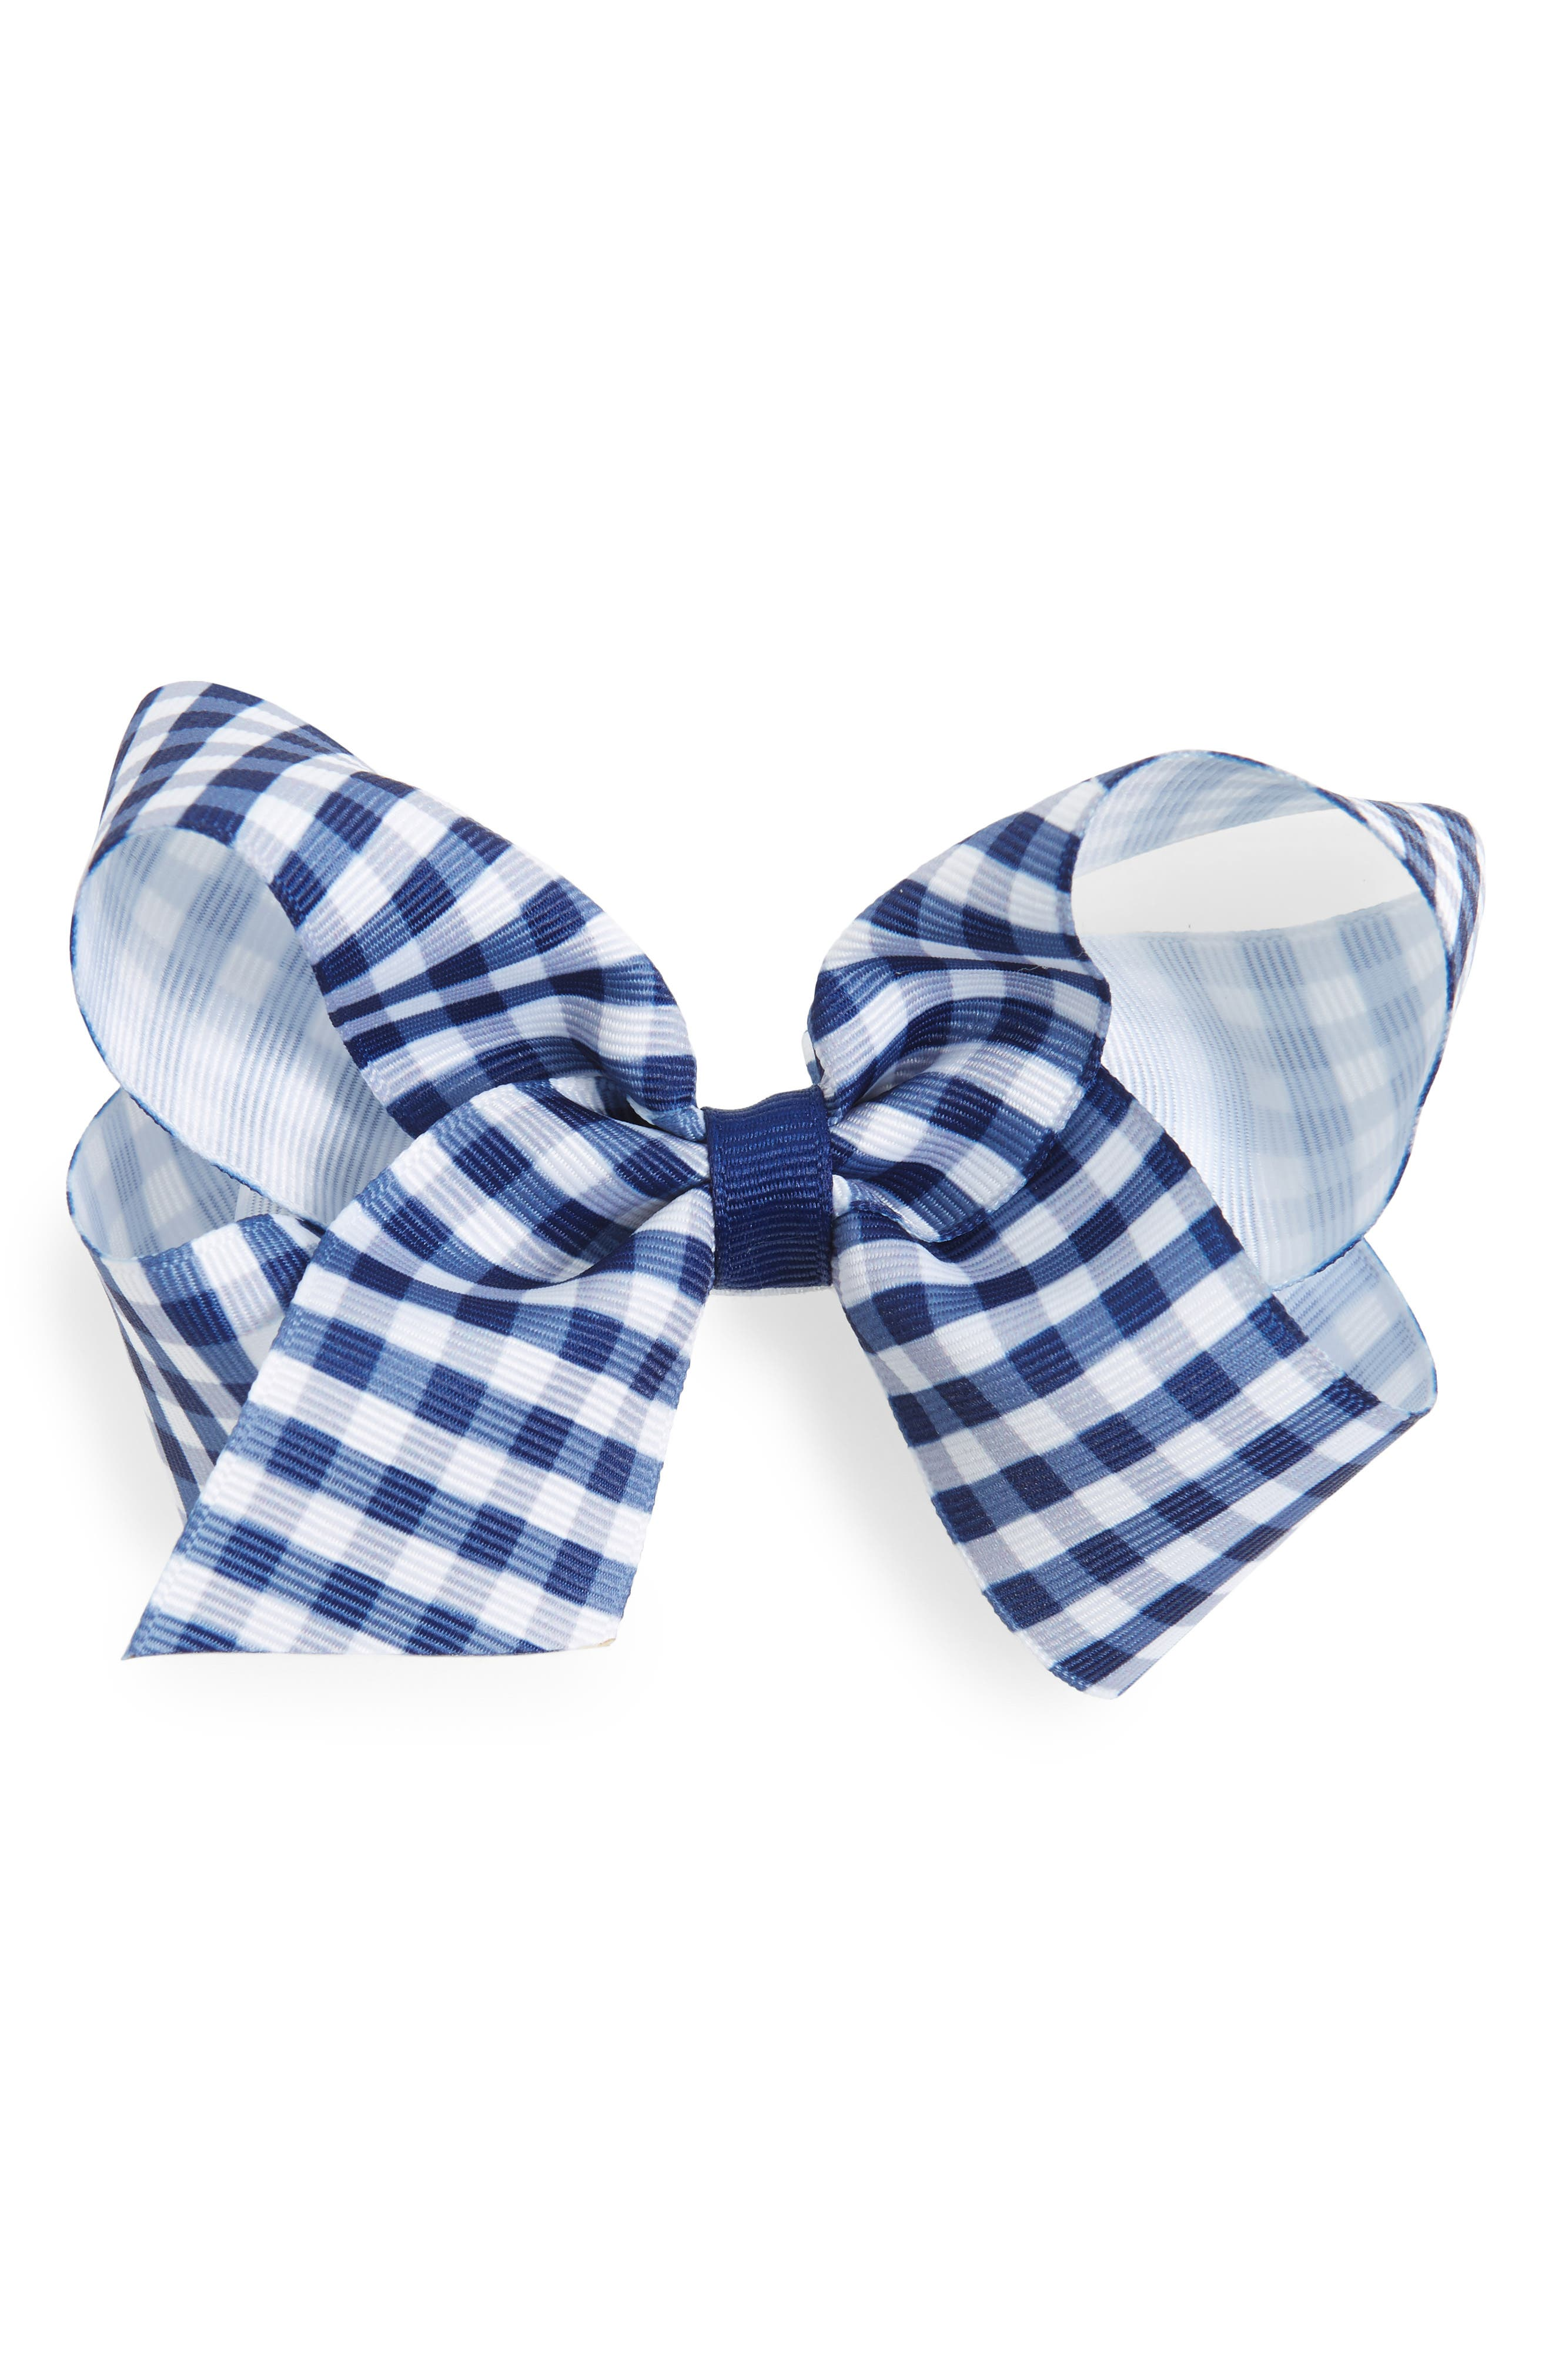 Alternate Image 1 Selected - PLH Bows & Laces Gingham Bow Clip (Baby Girls)